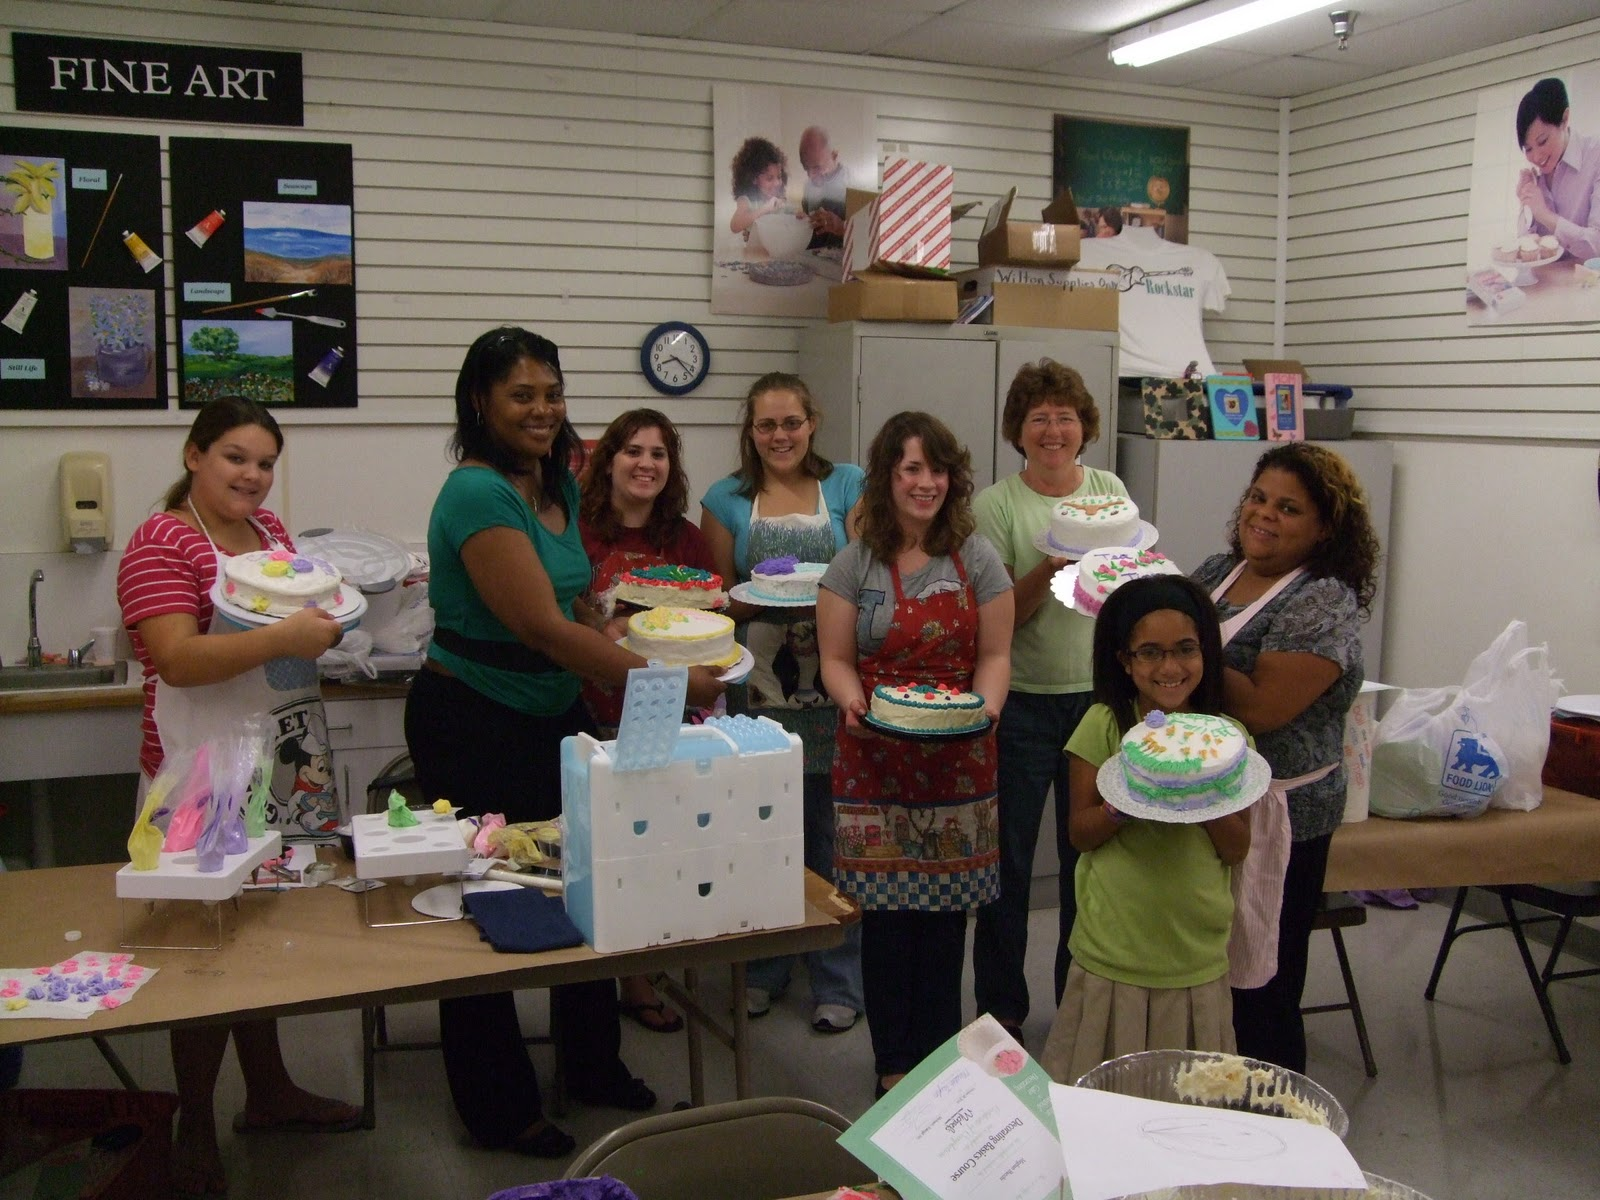 Cake Decorating Classes Michaels Bakersfield : [michaels cake decorating class supply list] - 28 images ...